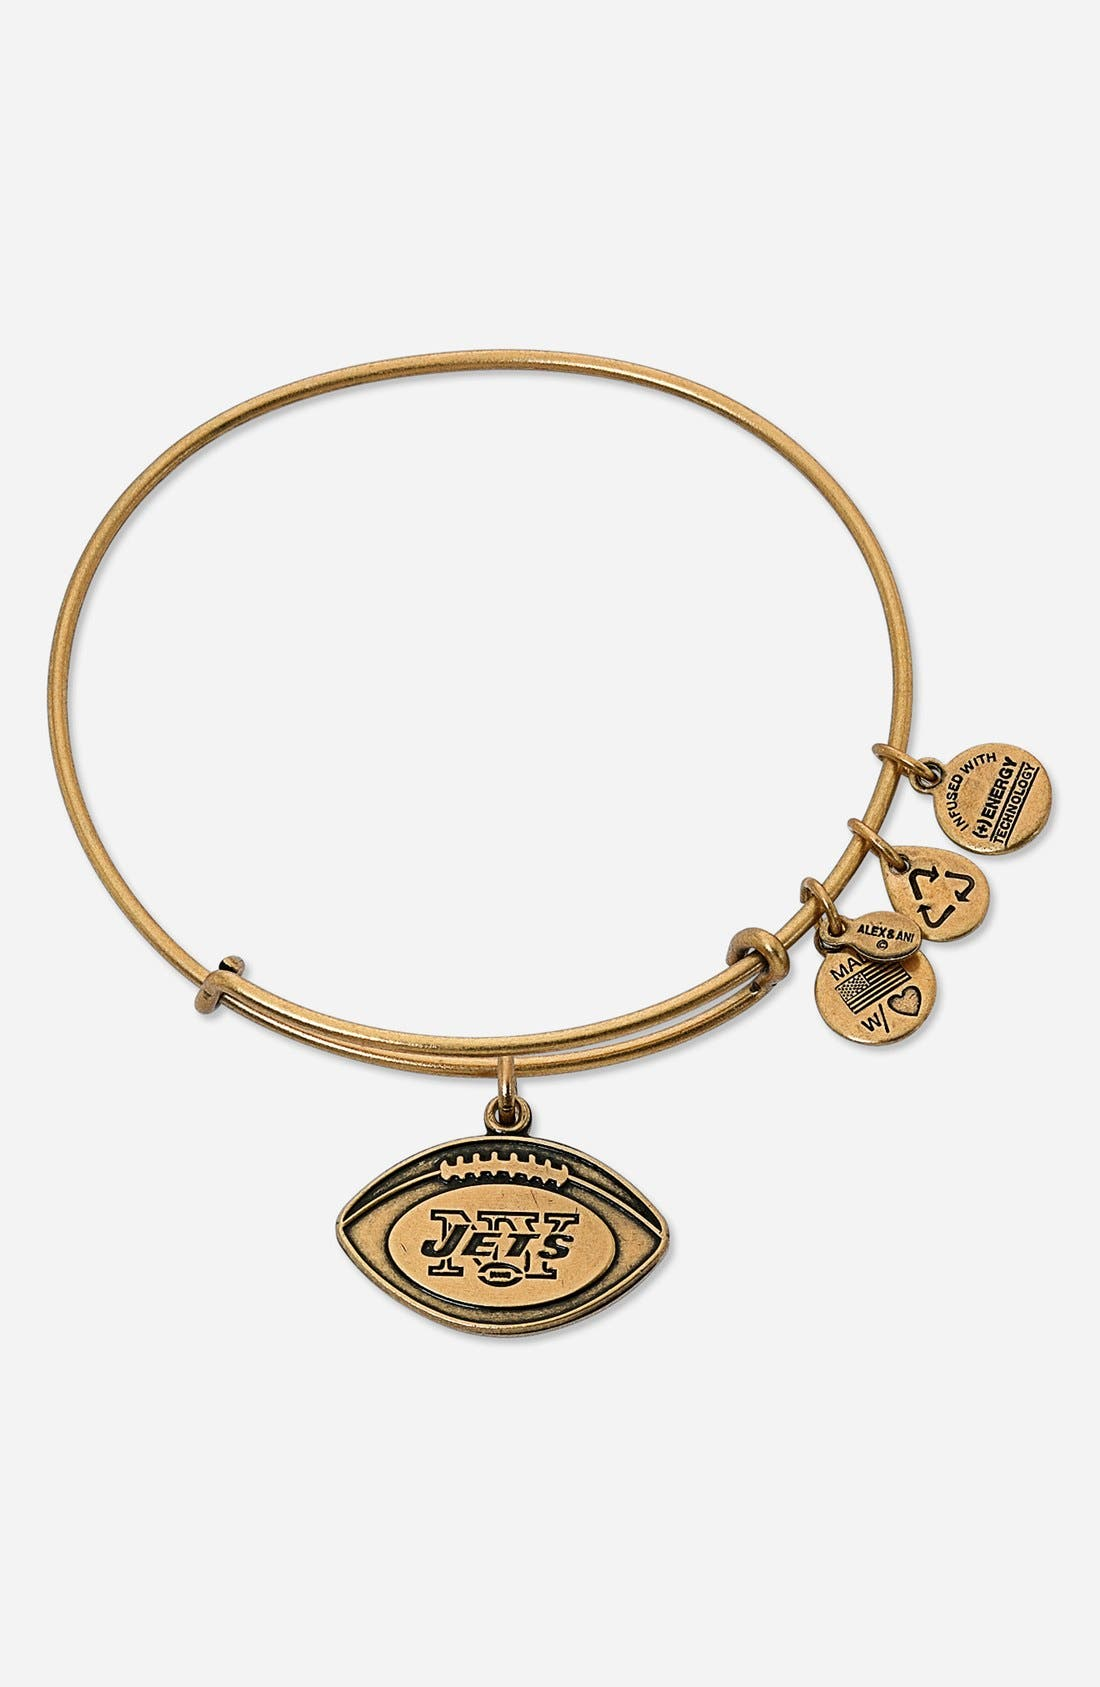 Main Image - Alex and Ani 'New York Jets' Adjustable Wire Bangle